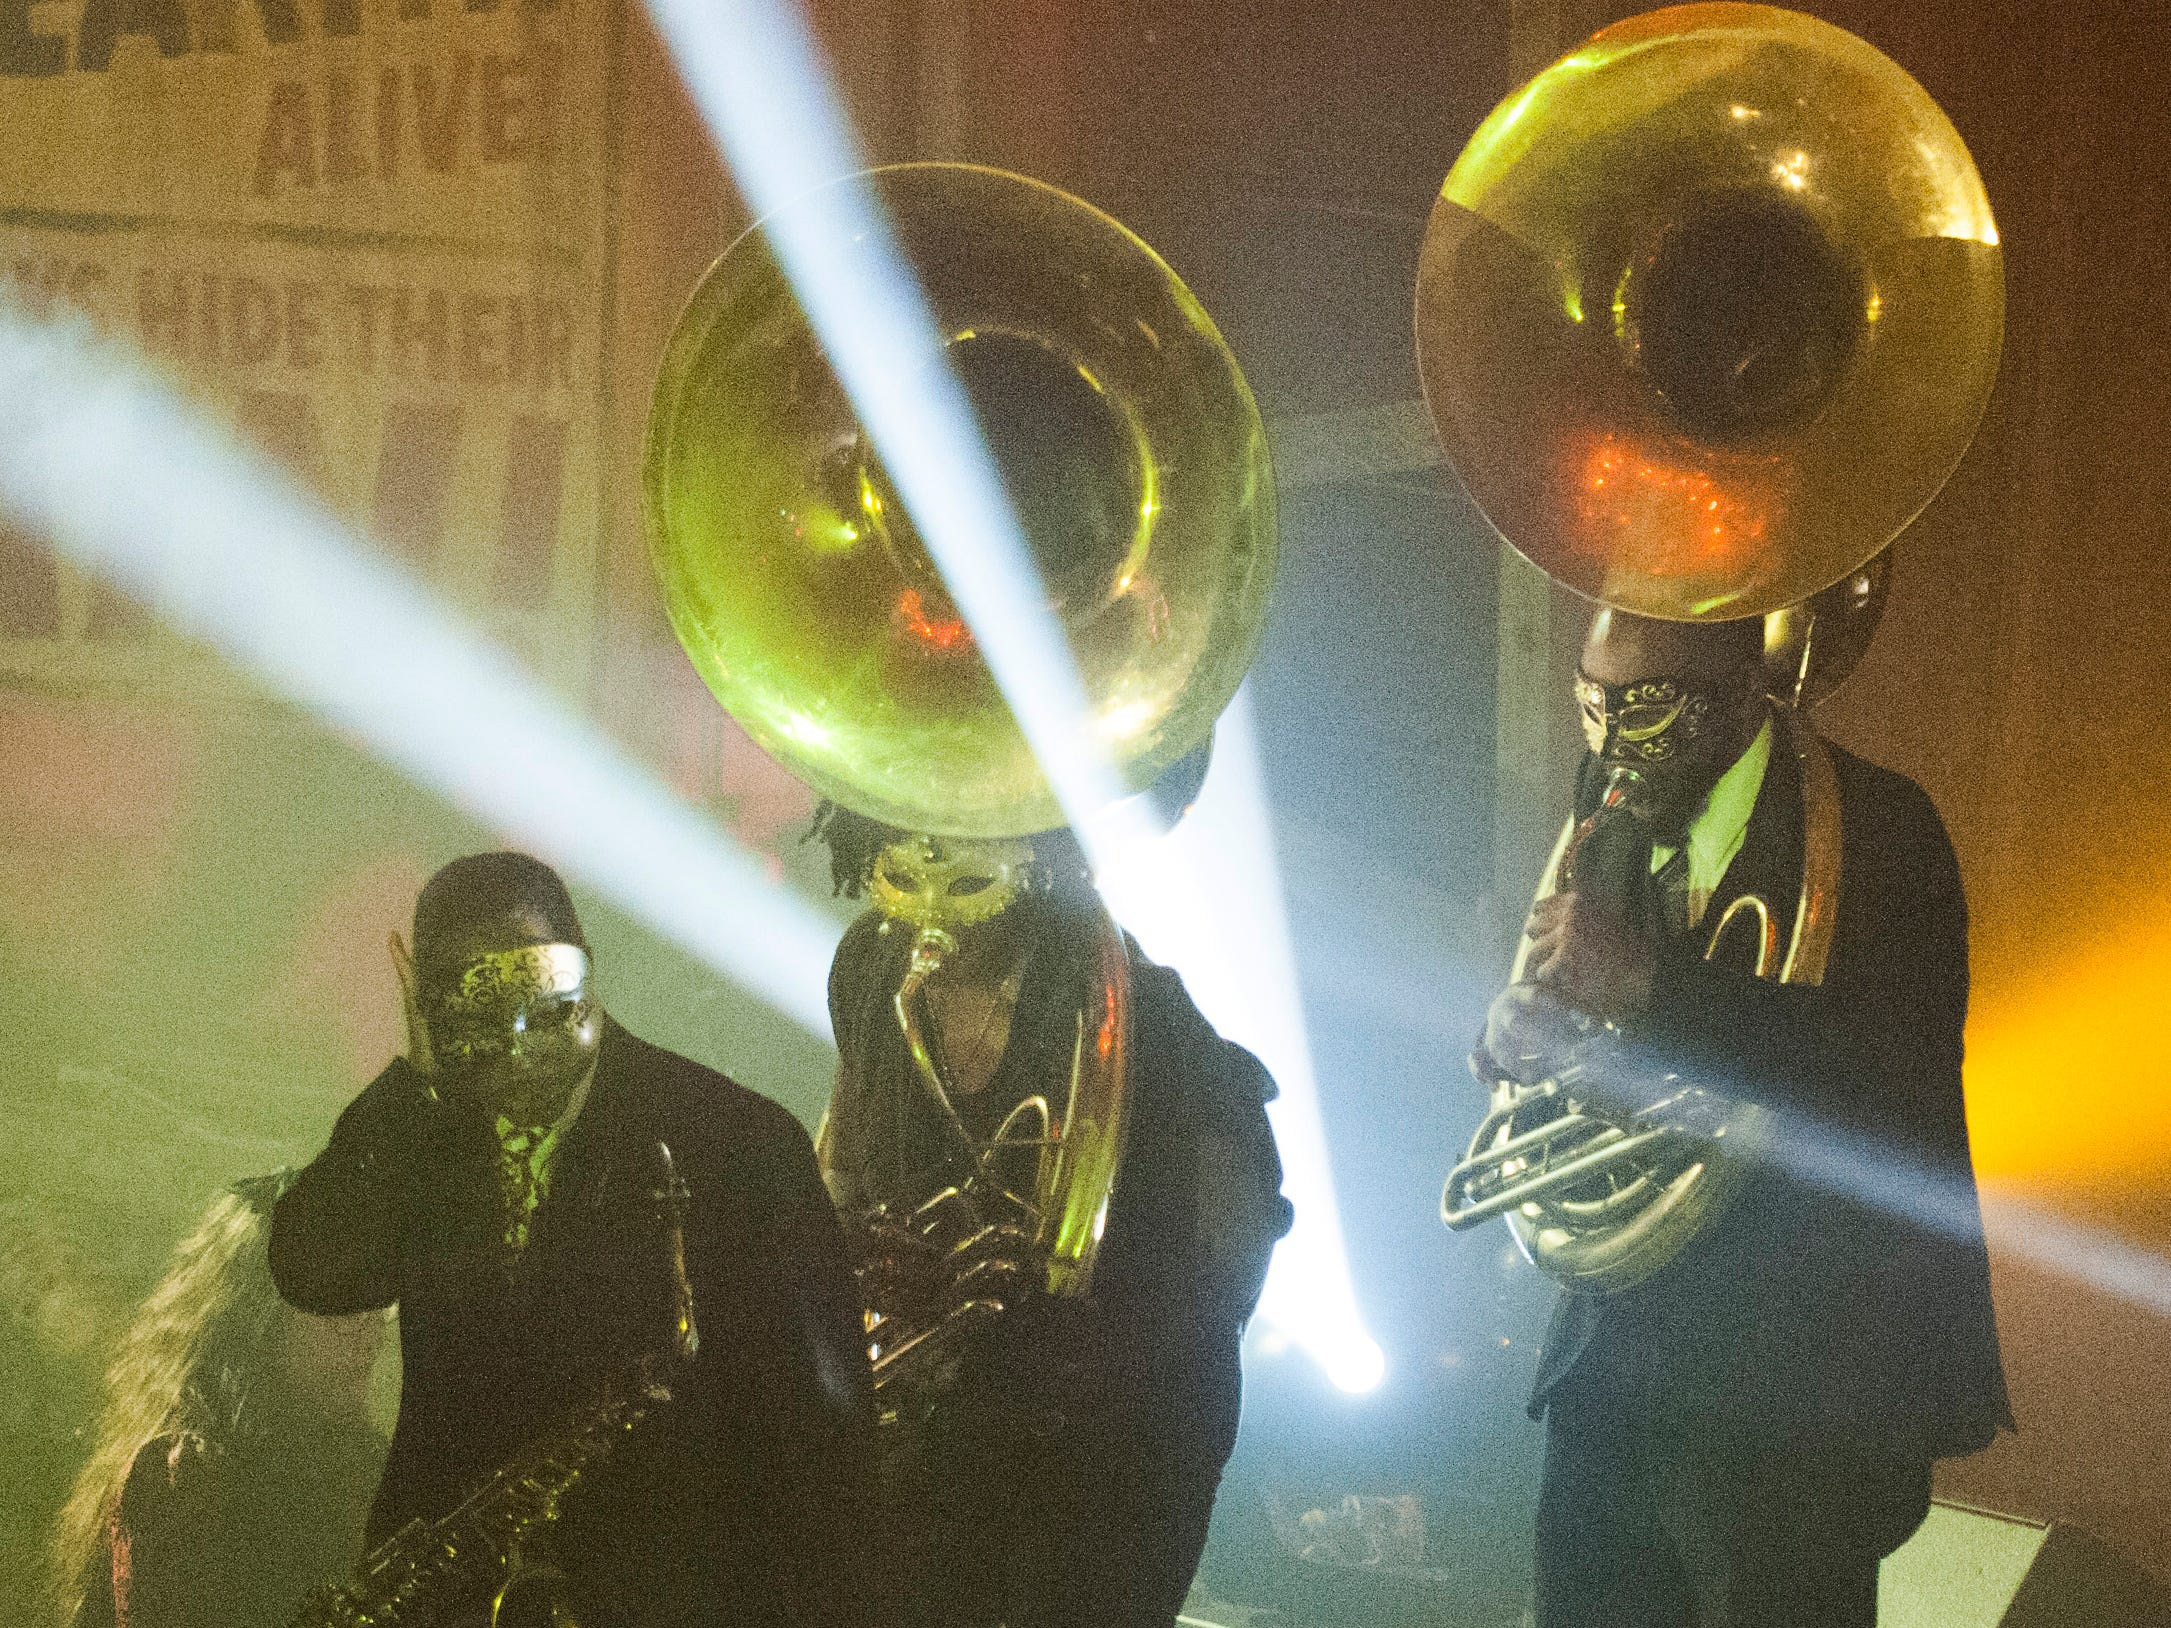 The Gabriel Brass Band performs on stage in the grand ballroom on the lower level of the Masonic Temple.